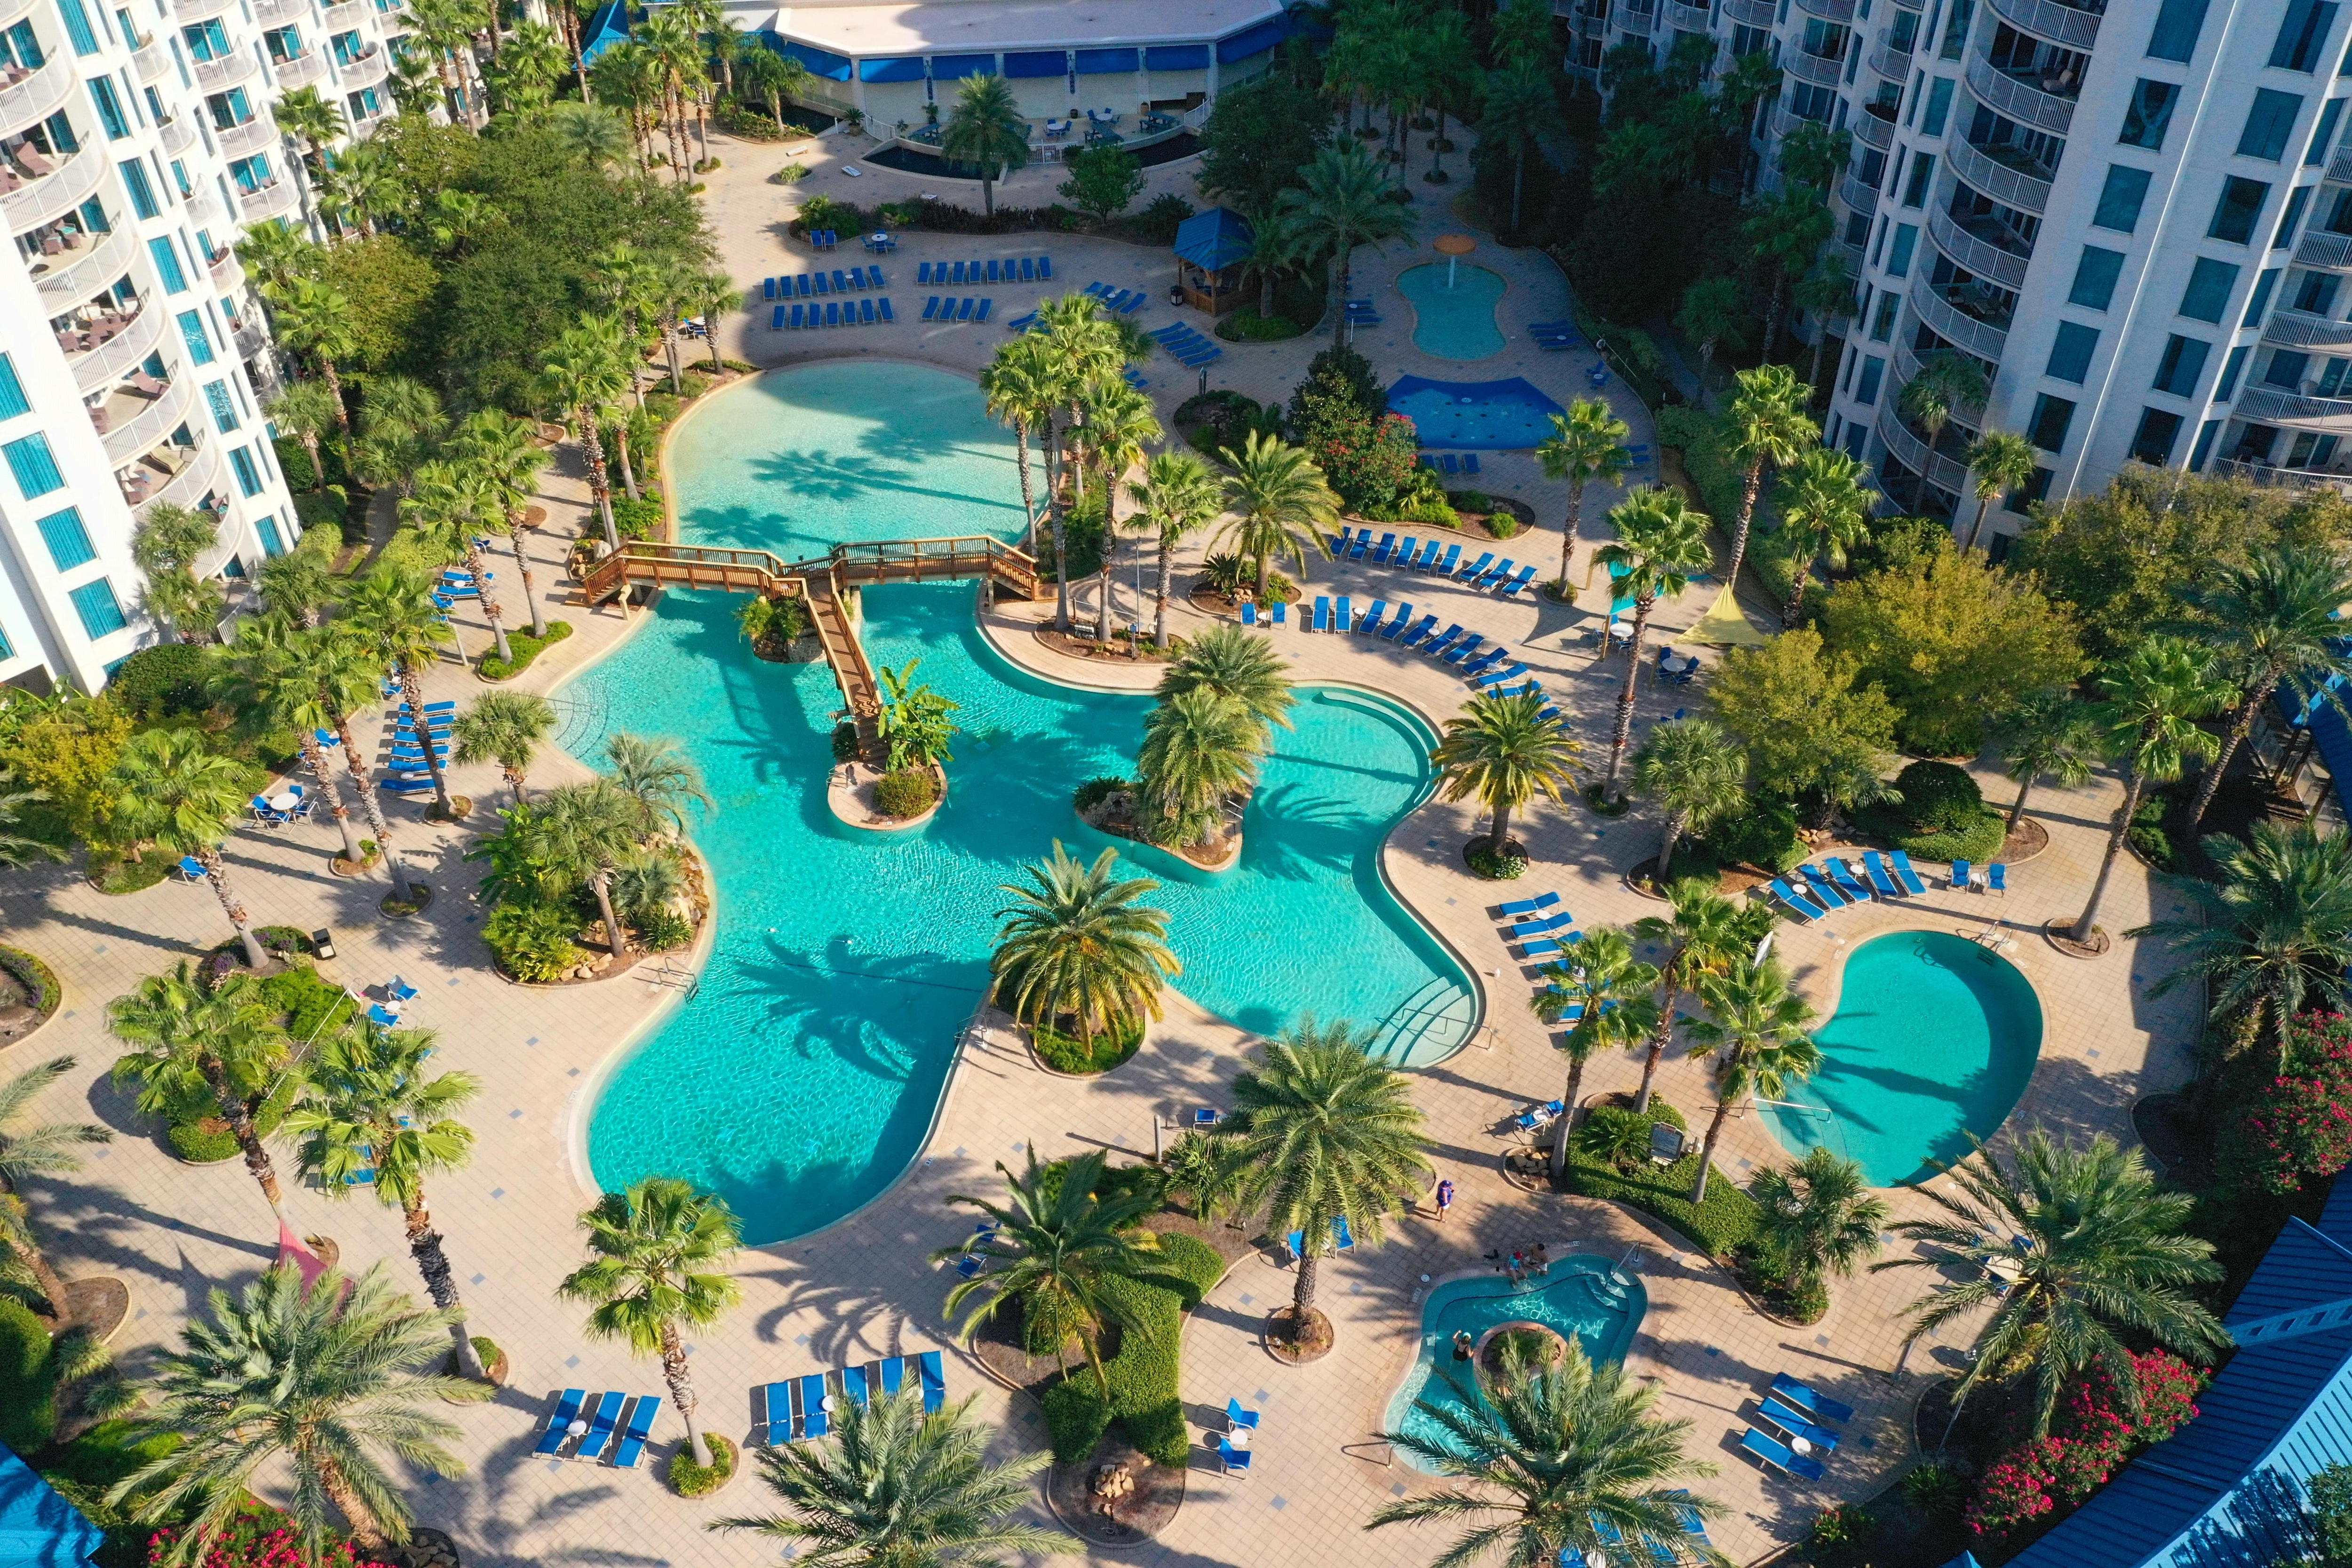 Property Image 2 - Palms of Destin Condo with Pool, Quick Walk to Beach